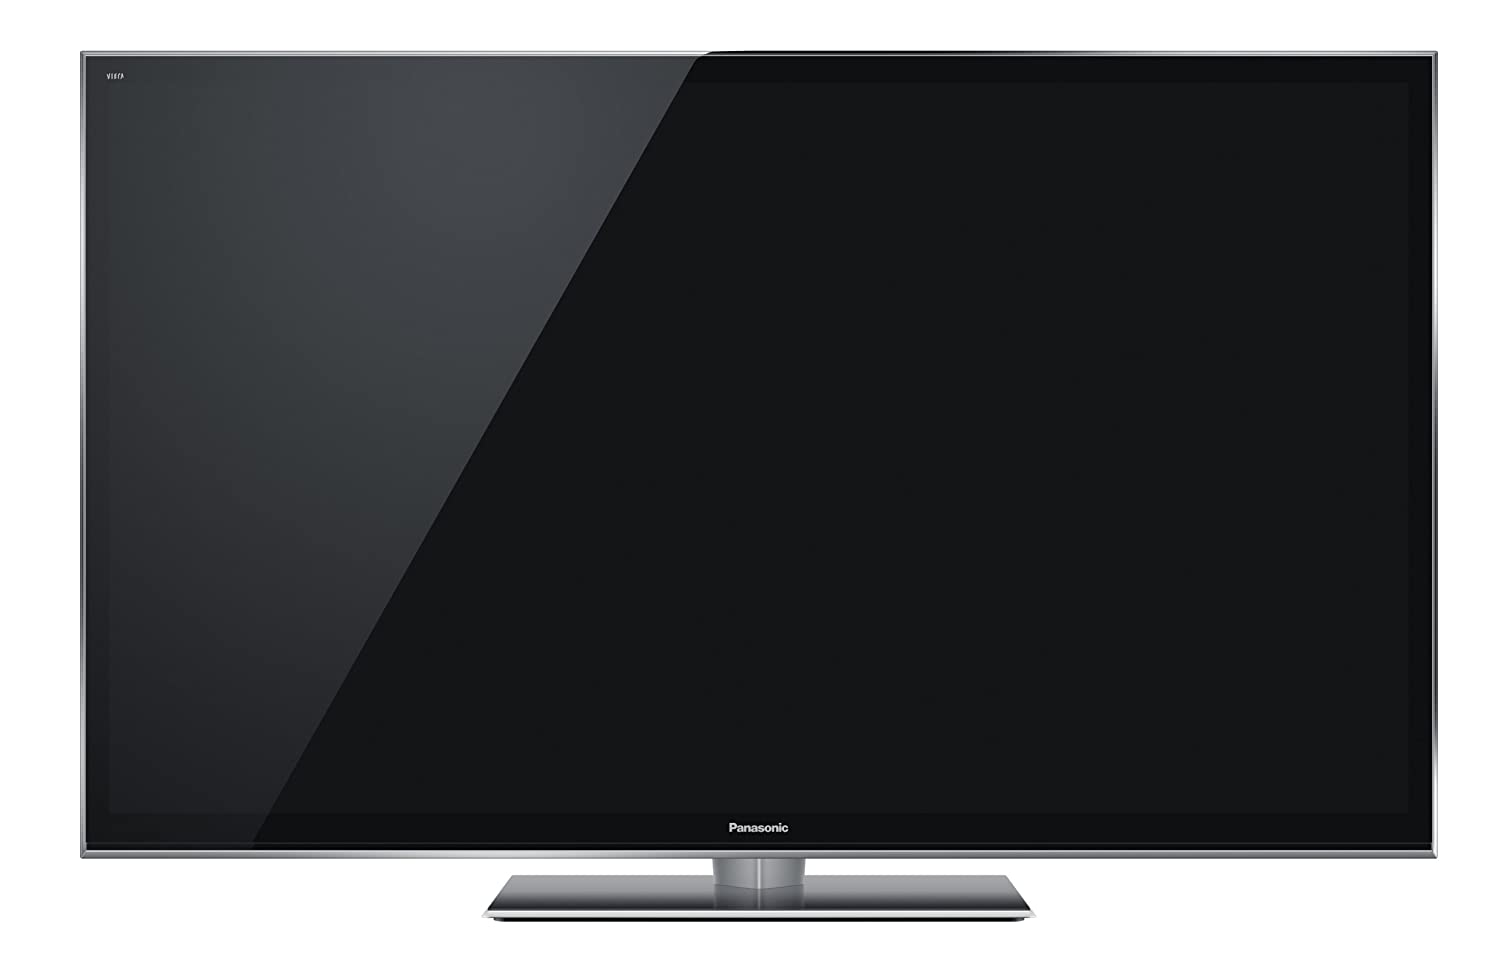 Amazon.com: Panasonic VIERA TC-P65VT50 65-Inch 1080p Full HD 3D Plasma TV  (2012 Model): Electronics